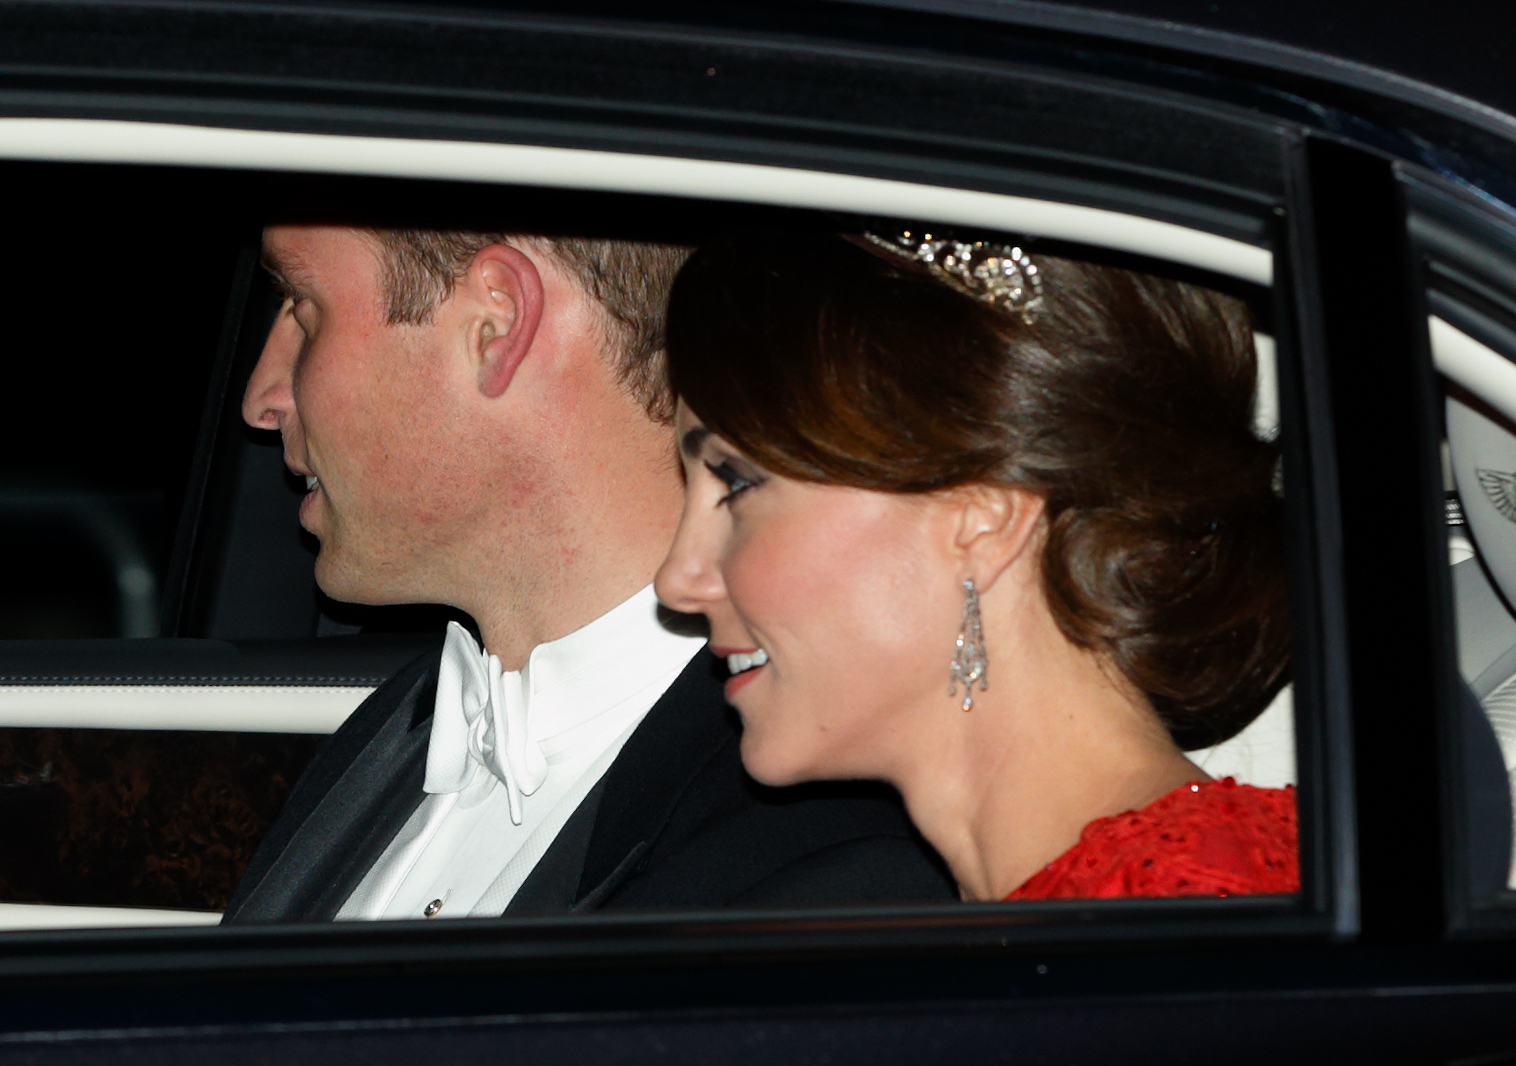 Kate Middleton stordisce al suo banchetto di First State al Buckingham Palace